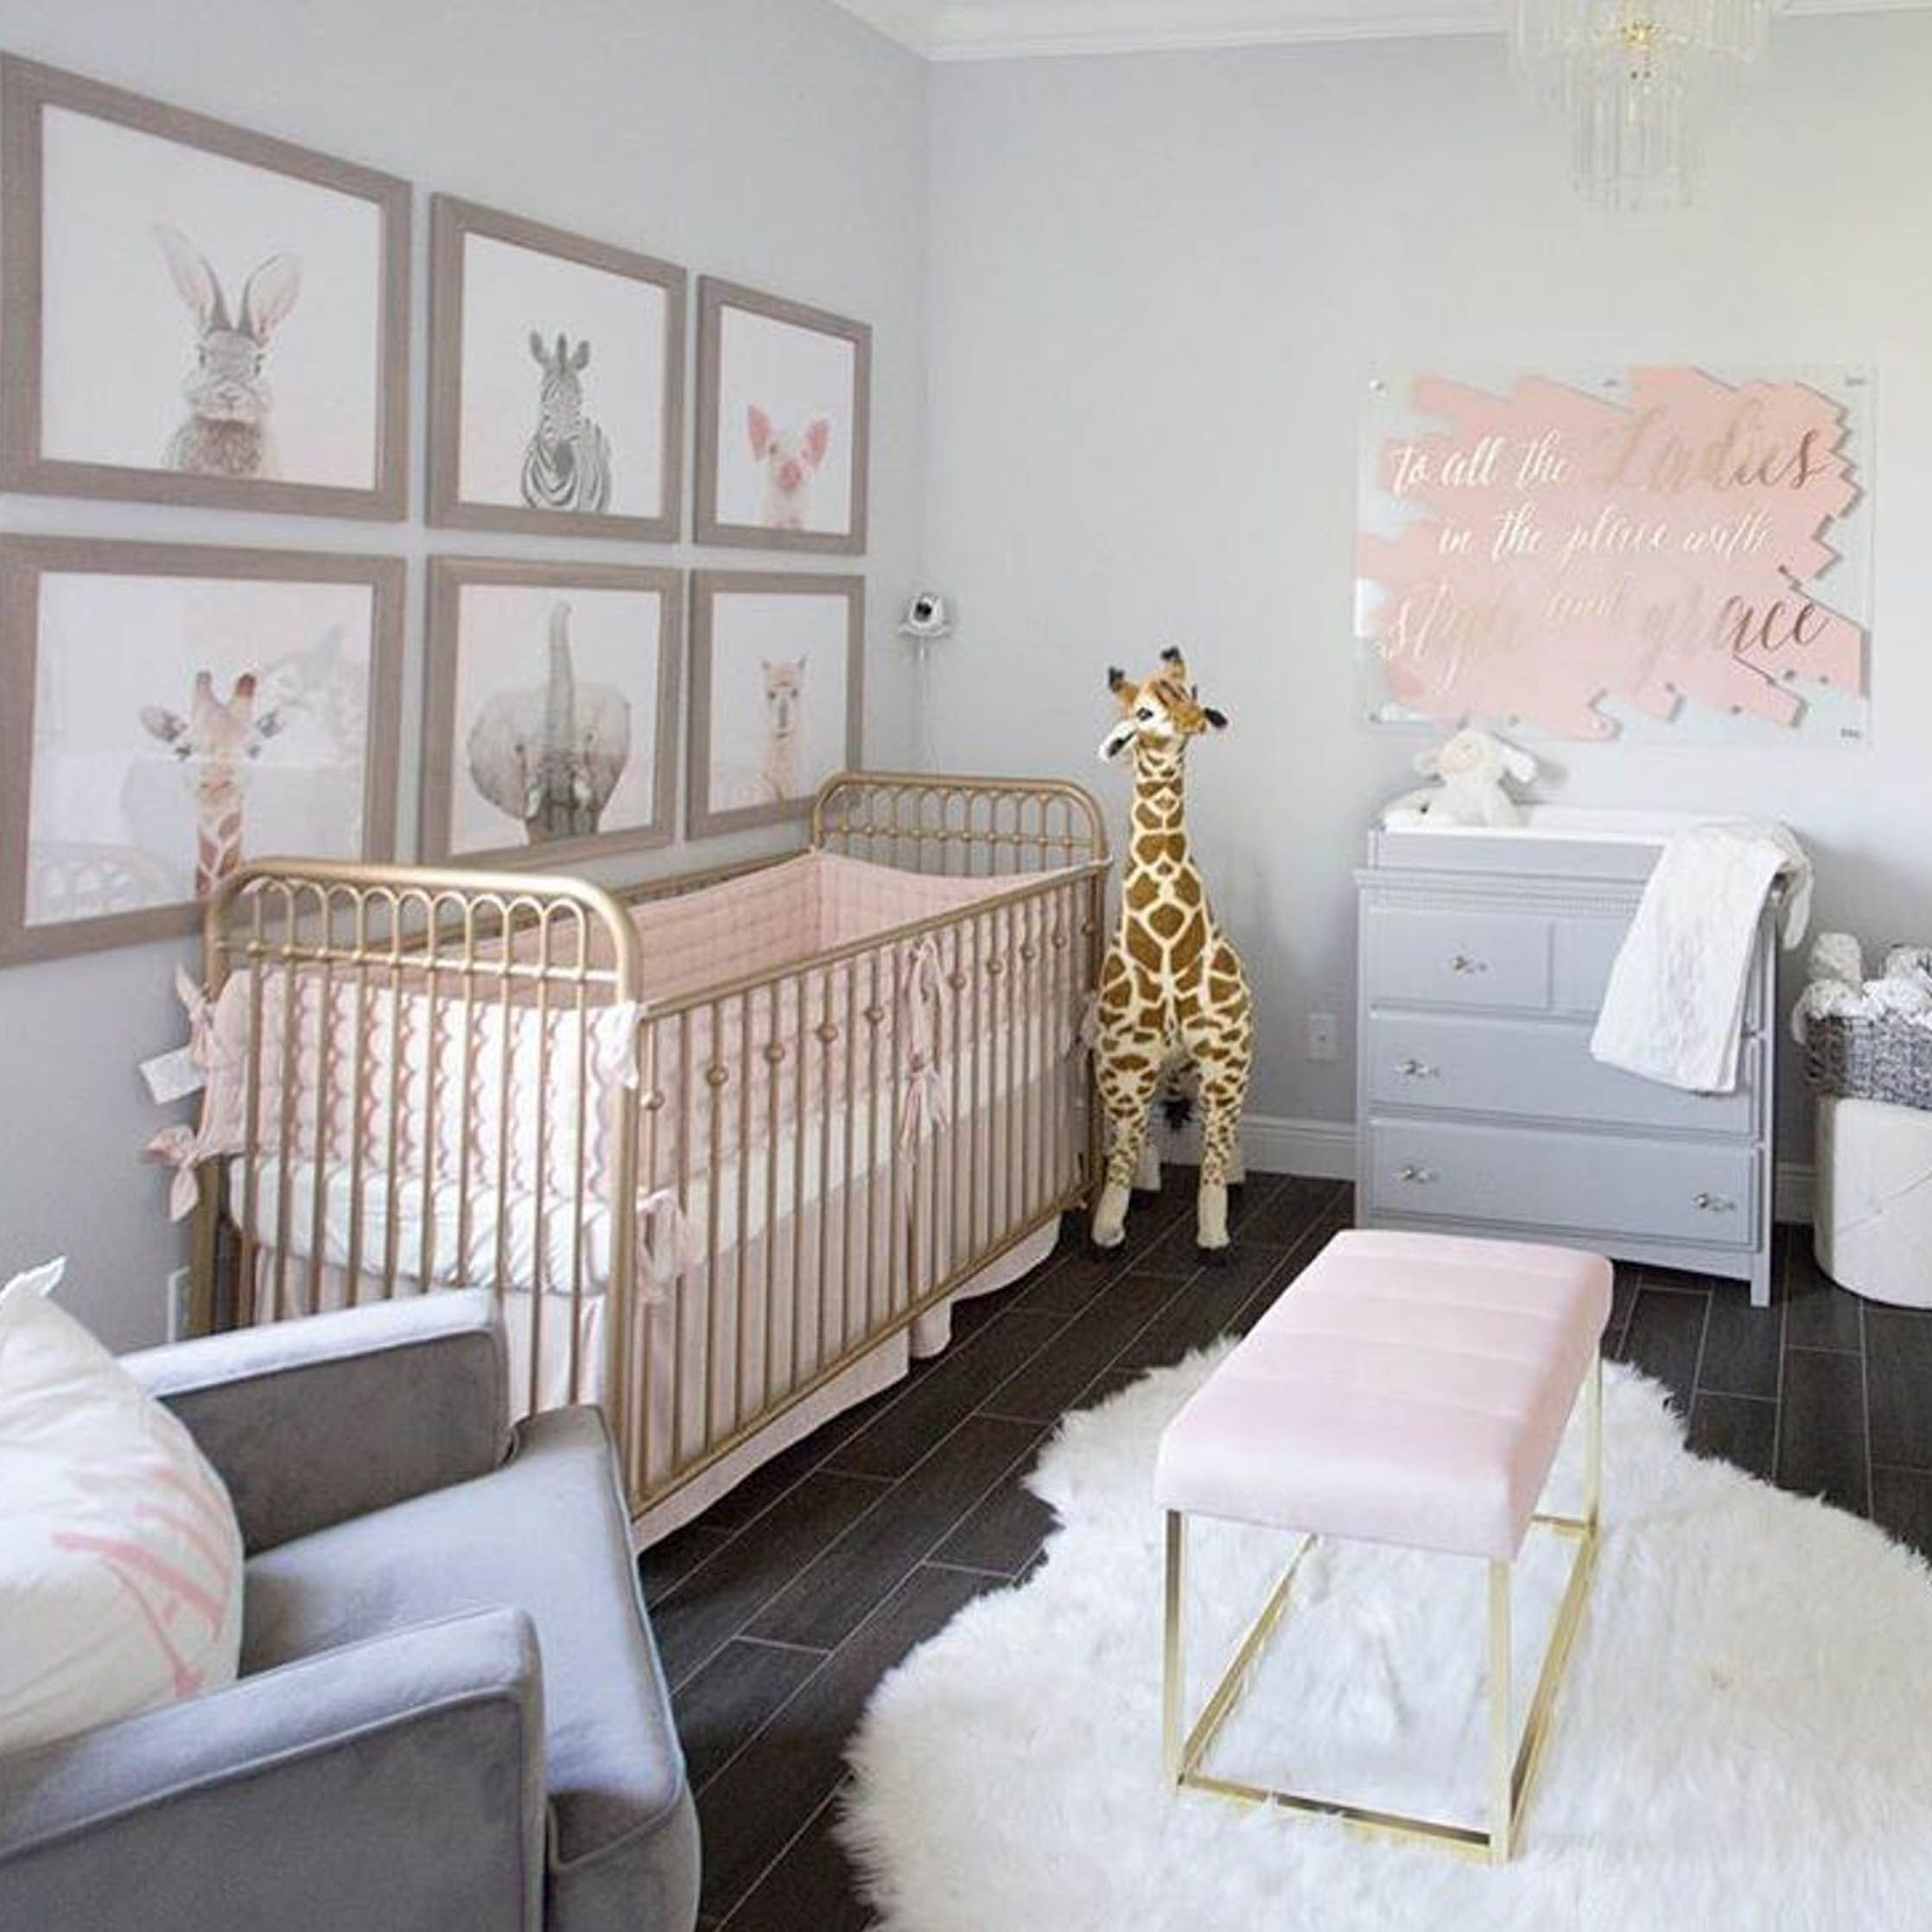 Here's What's Trending in the Nursery Baby nursery decor